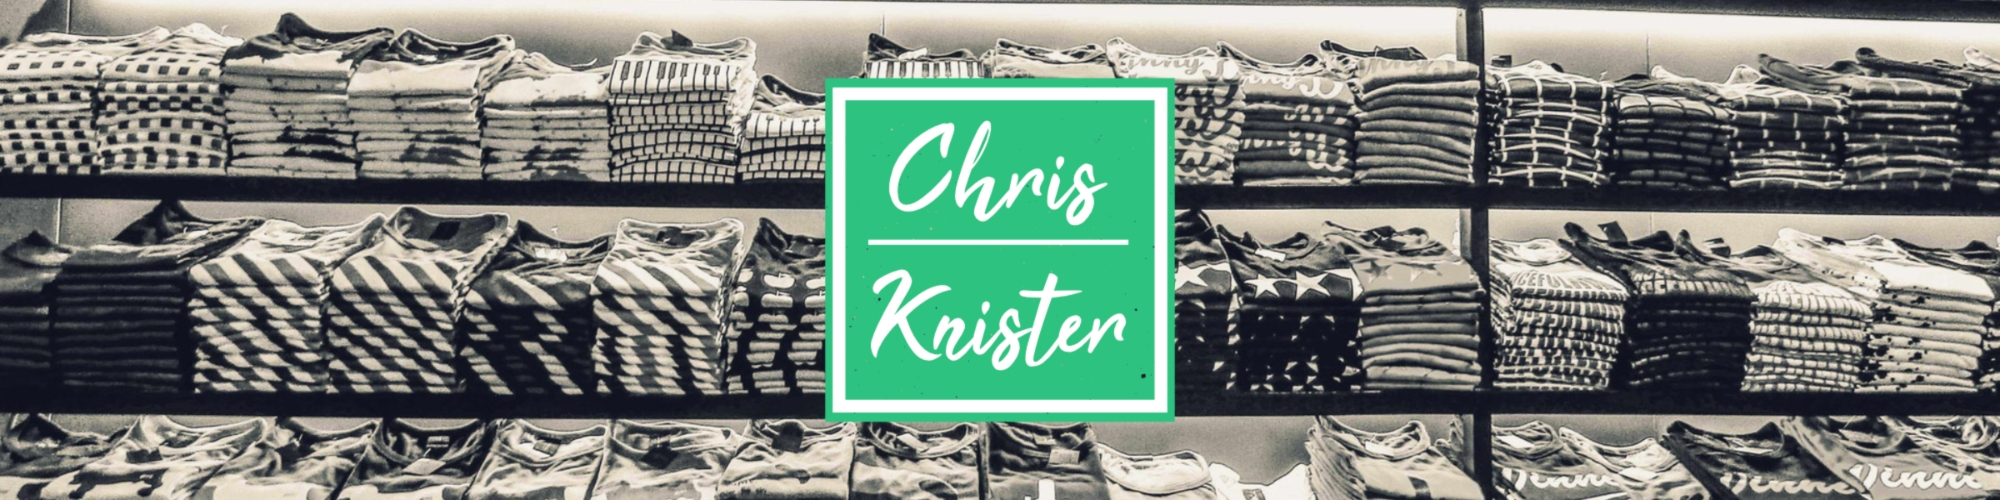 Showroom - Chris Knister